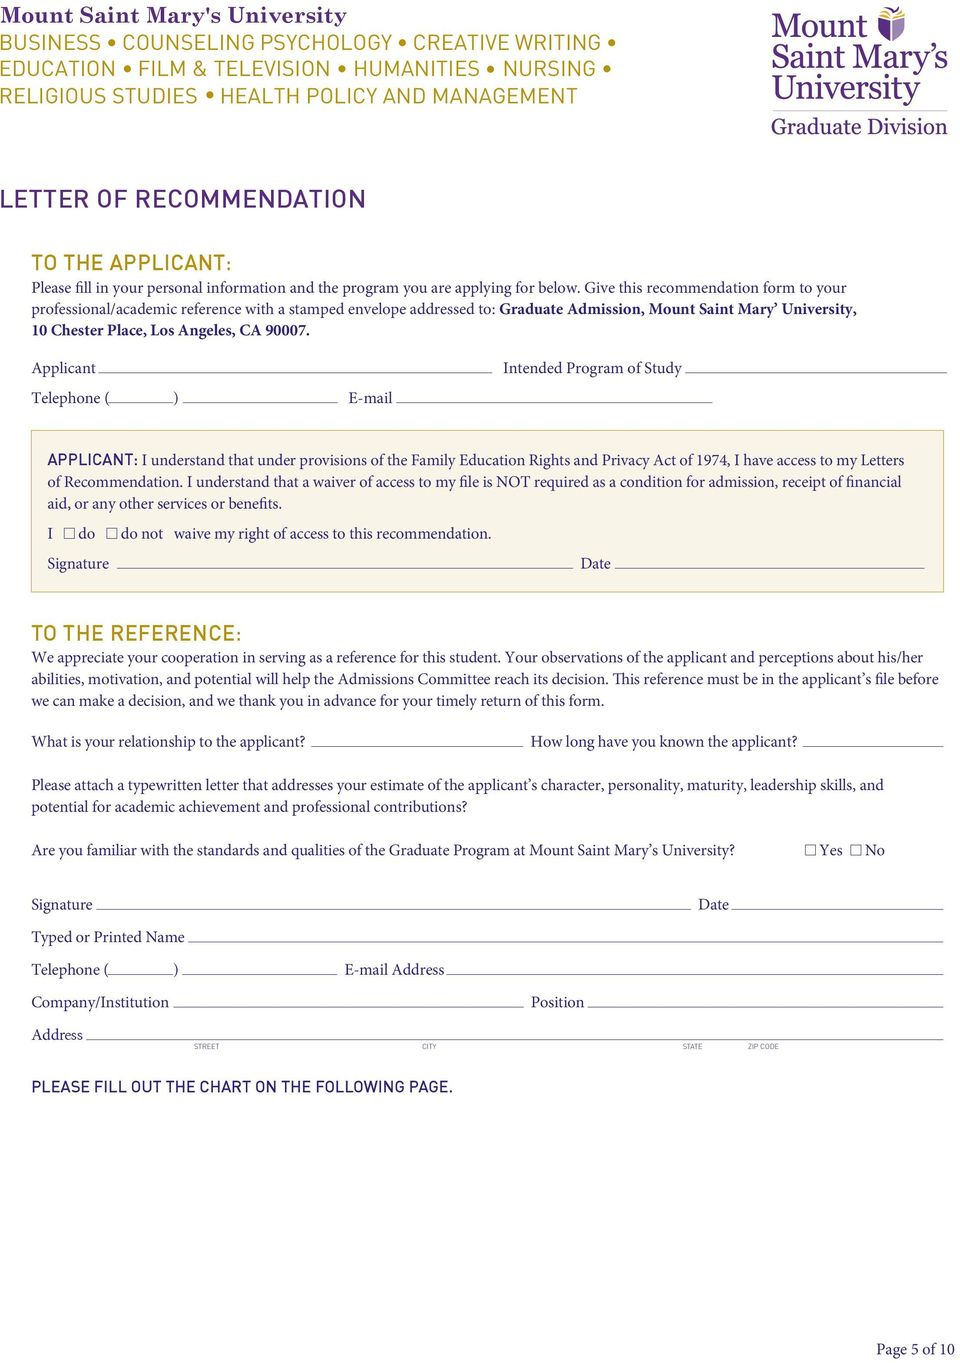 Applicant Telephone ( ) E-mail Intended Program of Study APPLICANT: I understand that under provisions of the Family Education Rights and Privacy Act of 1974, I have access to my Letters of